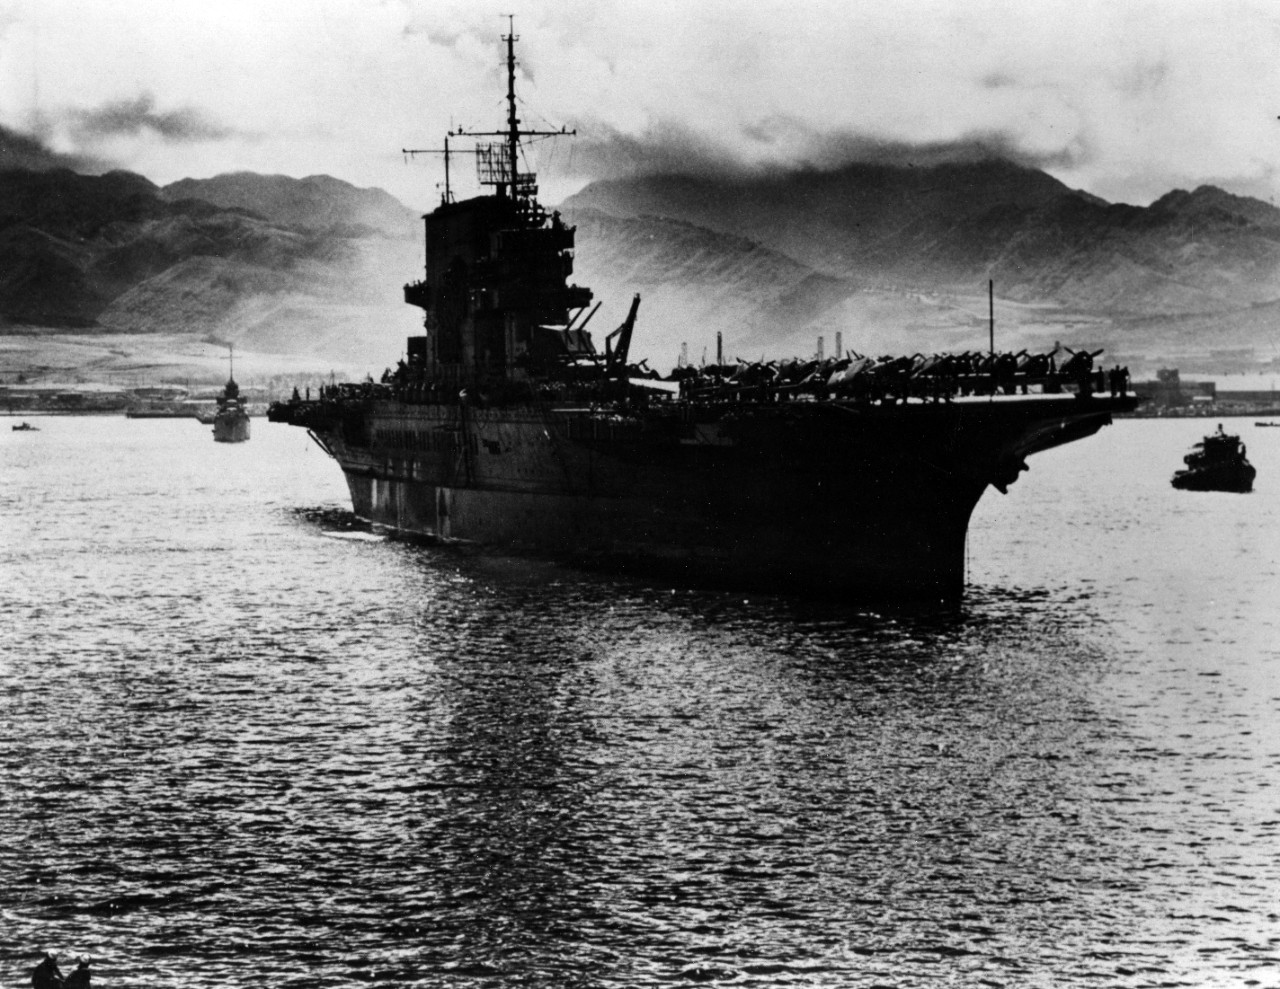 Photo #: 80-G-10121  USS Saratoga (CV-3)